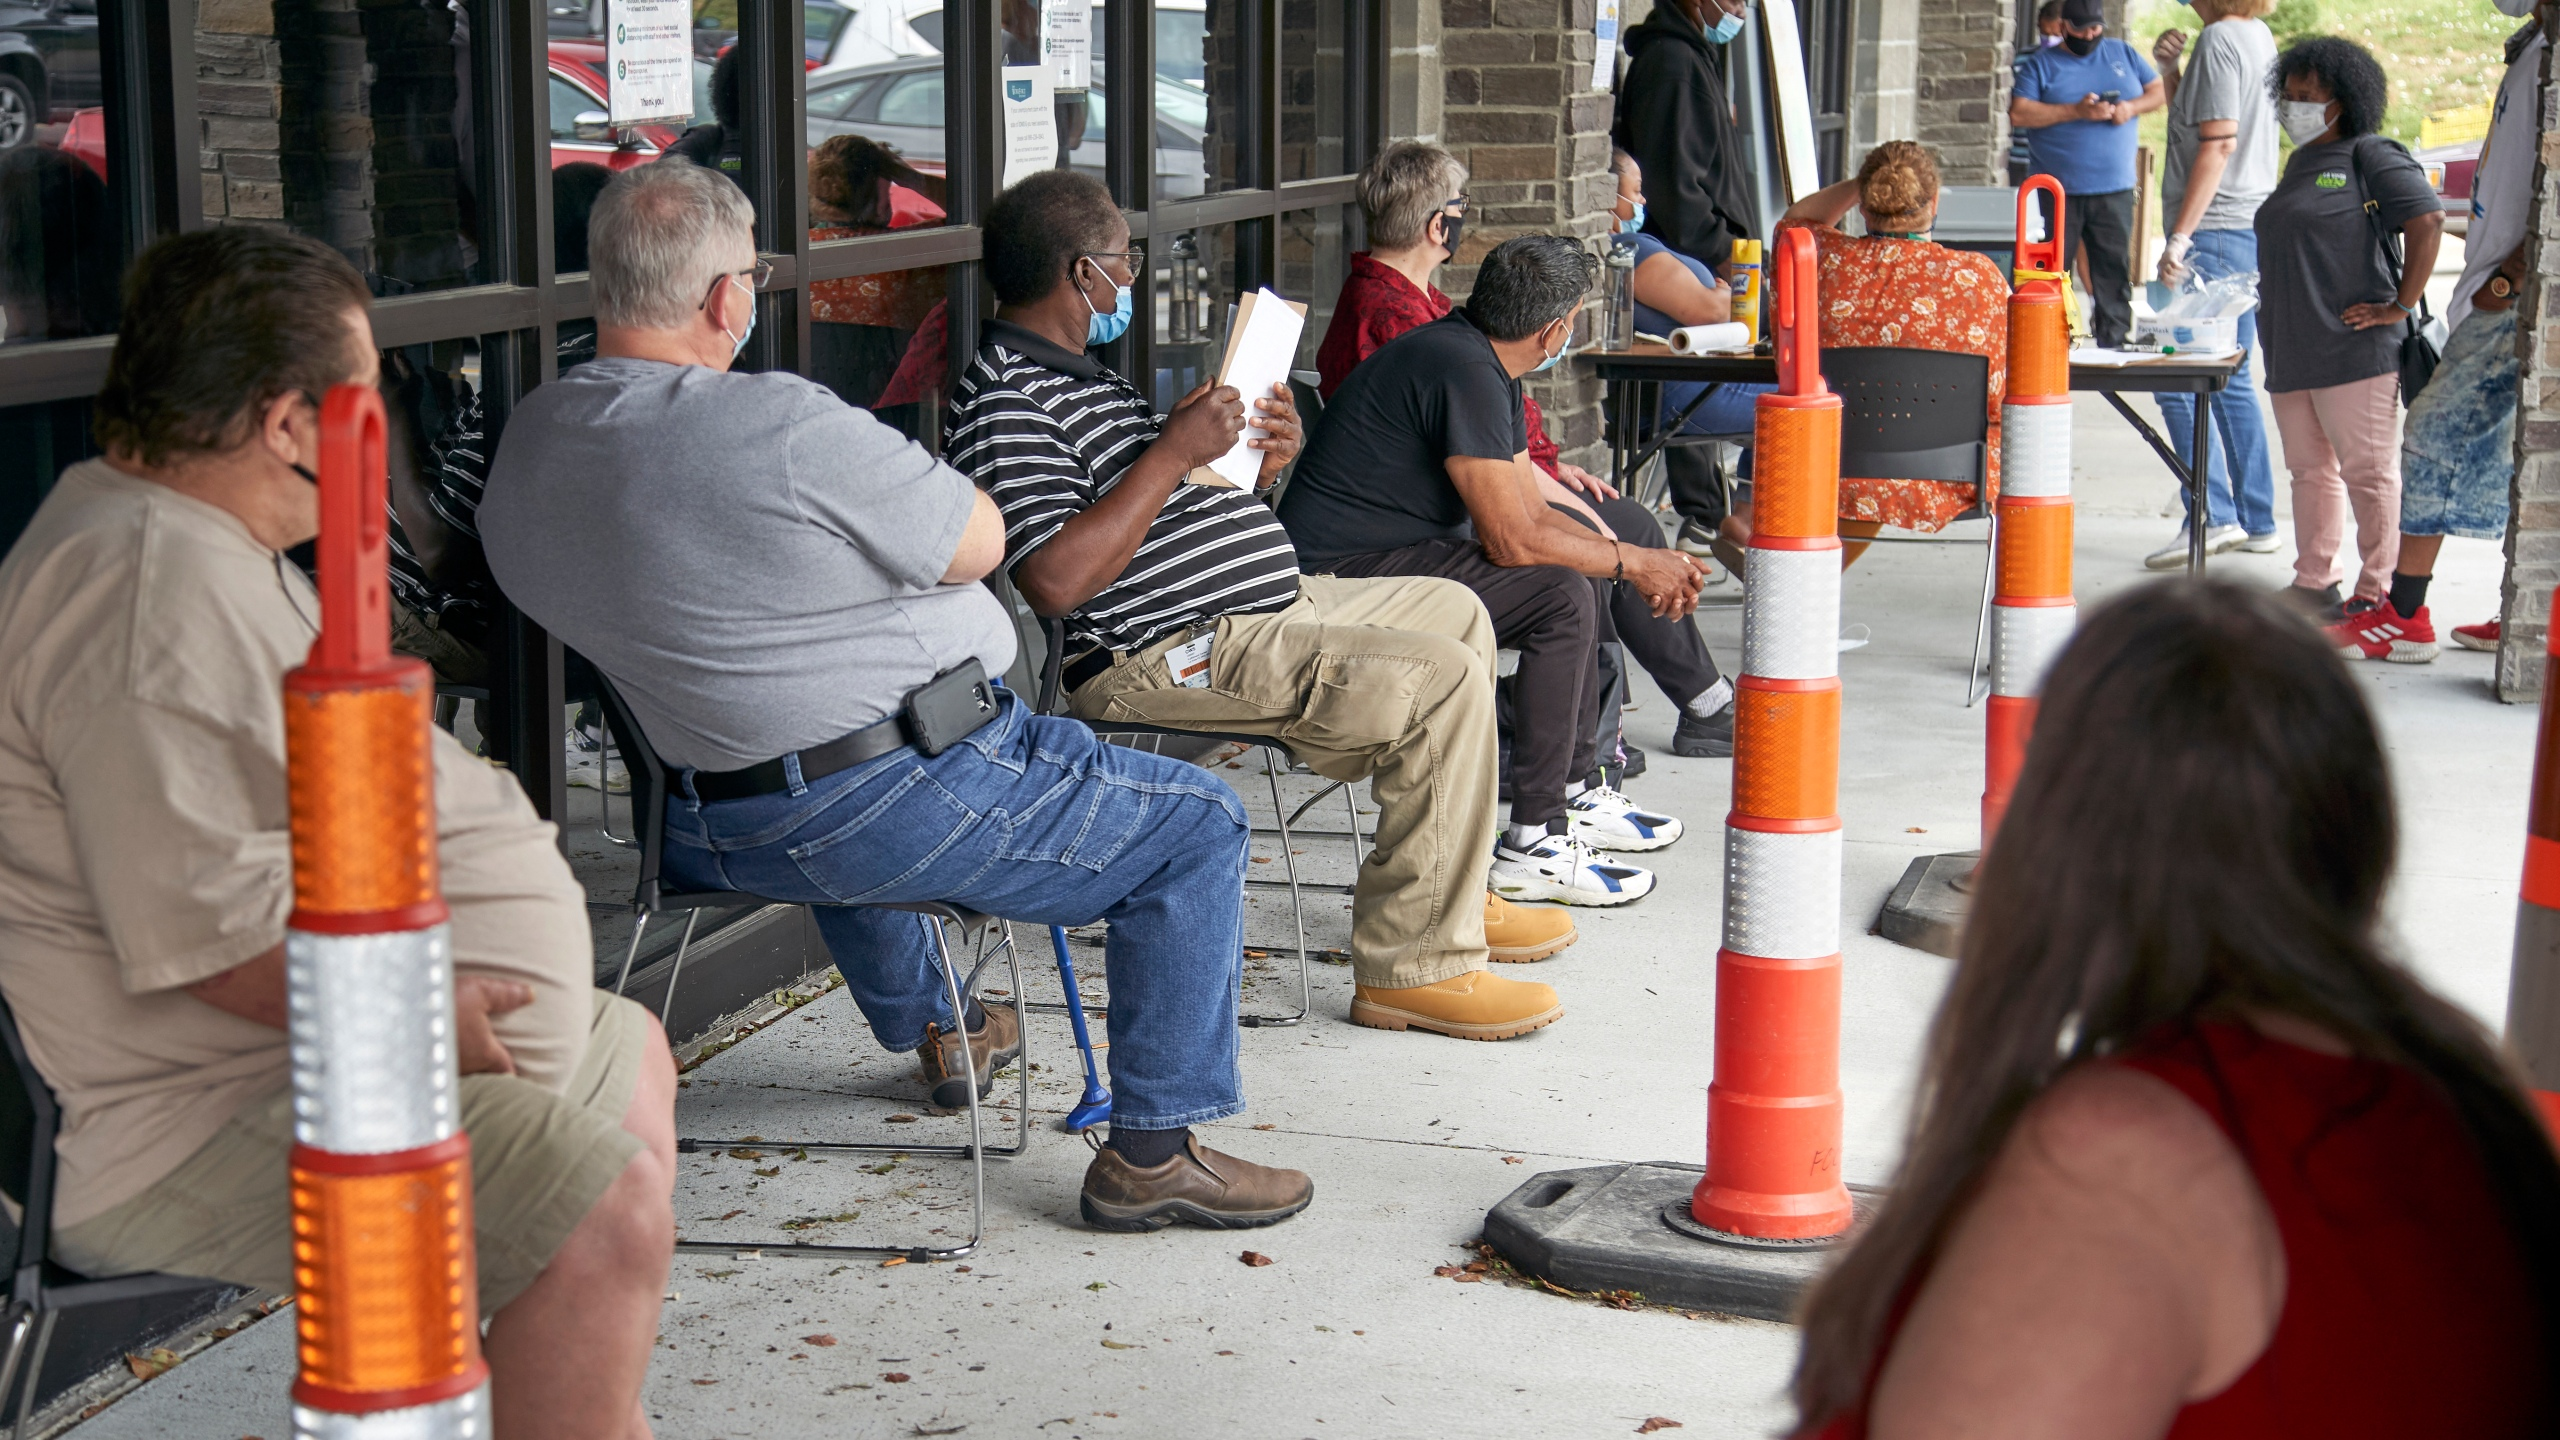 FILE - In this July 15, 2020, file photo, job seekers exercise social distancing as they wait to be called into the Heartland Workforce Solutions office in Omaha, Neb. The extra $600 in weekly unemployment benefits has expired, the federal eviction moratorium has ended and federal money to help businesses retain workers has grown lean. Meanwhile, the pandemic rages on and there is no consensus from Washington on another relief package. (AP Photo/Nati Harnik, File)